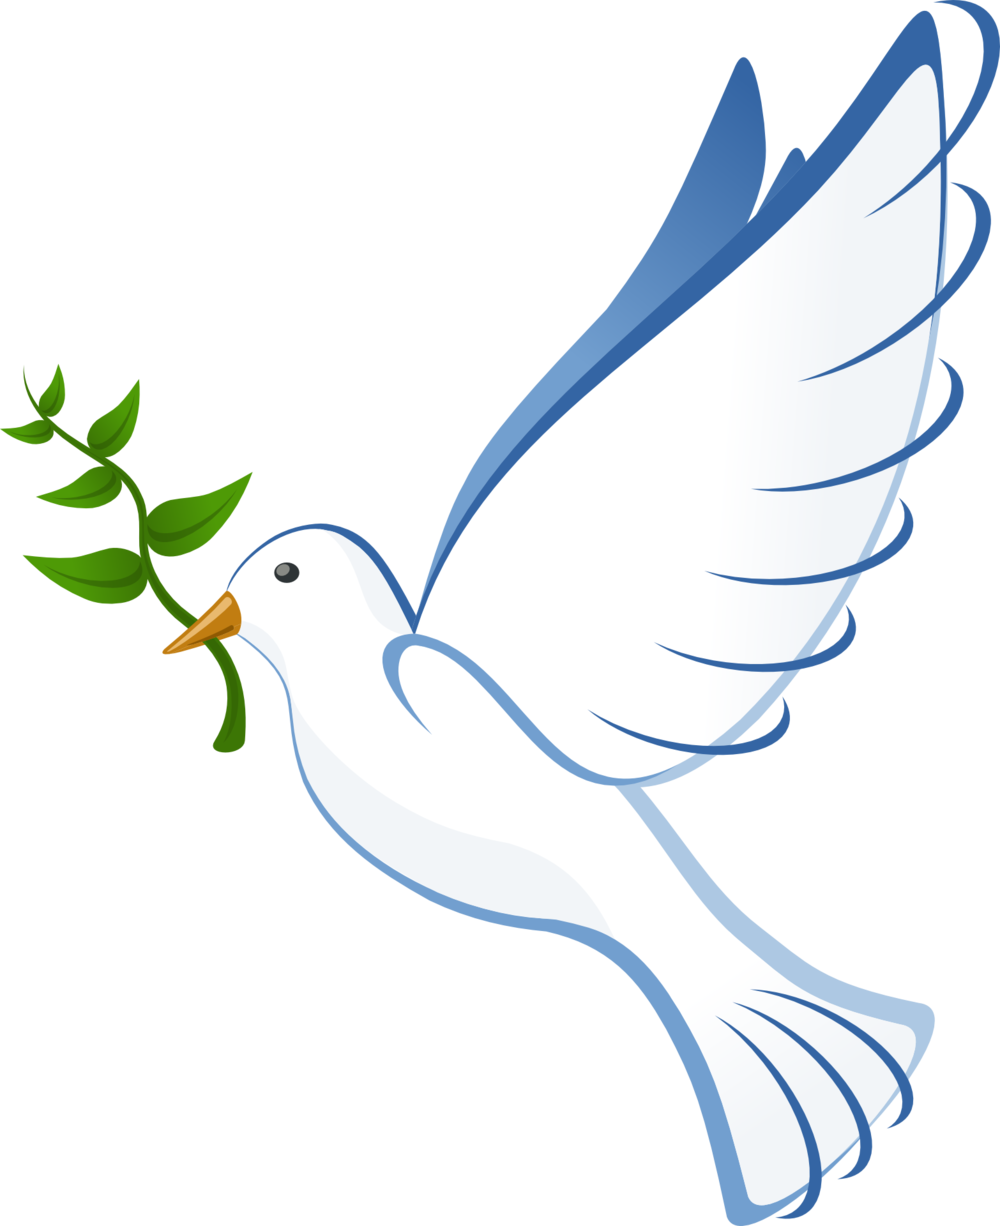 dove-41260.png